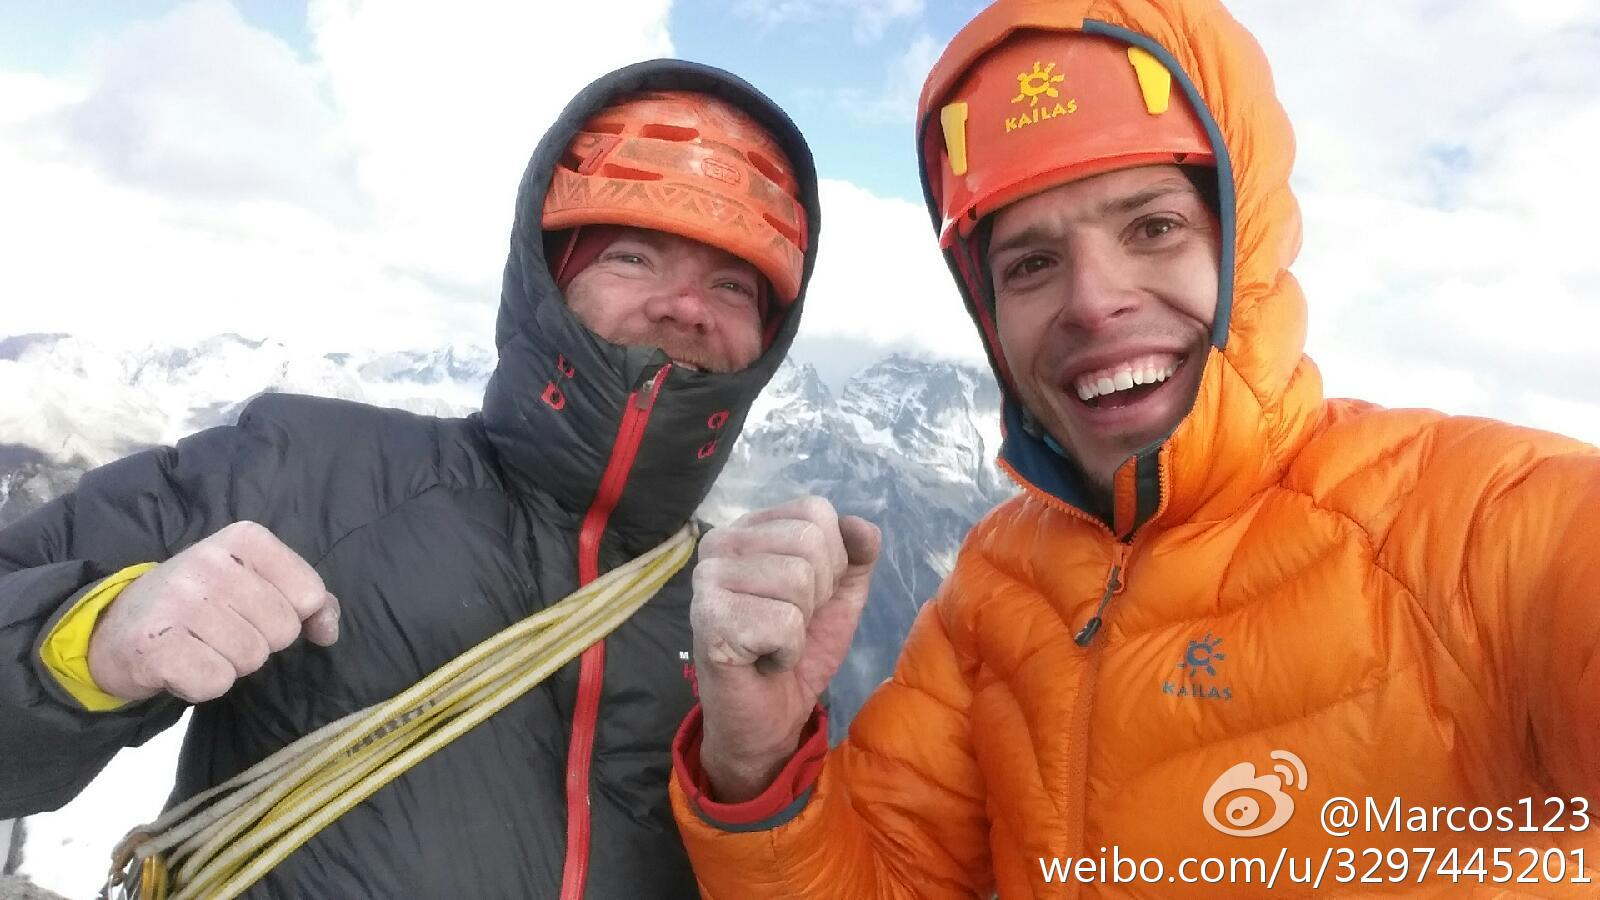 Trip Report: Three First Ascents for Dali Bar Sponsored Climber ...